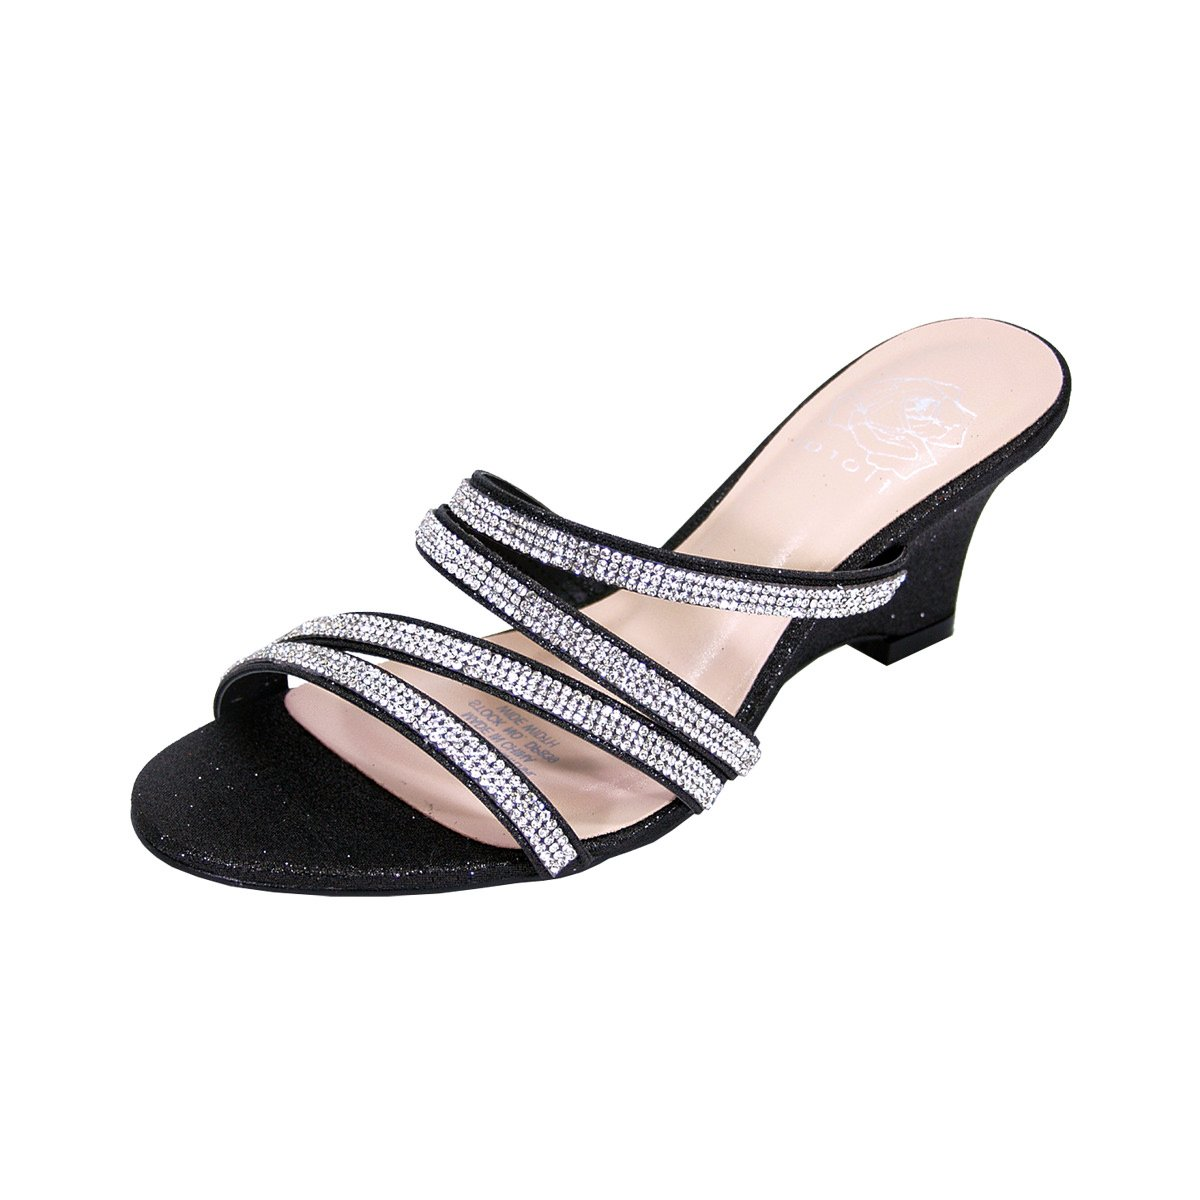 Floral Kelly Women Extra Wide Width Rhinestone Strappy Slip On Wedge Heeled Party Sandals Black 9